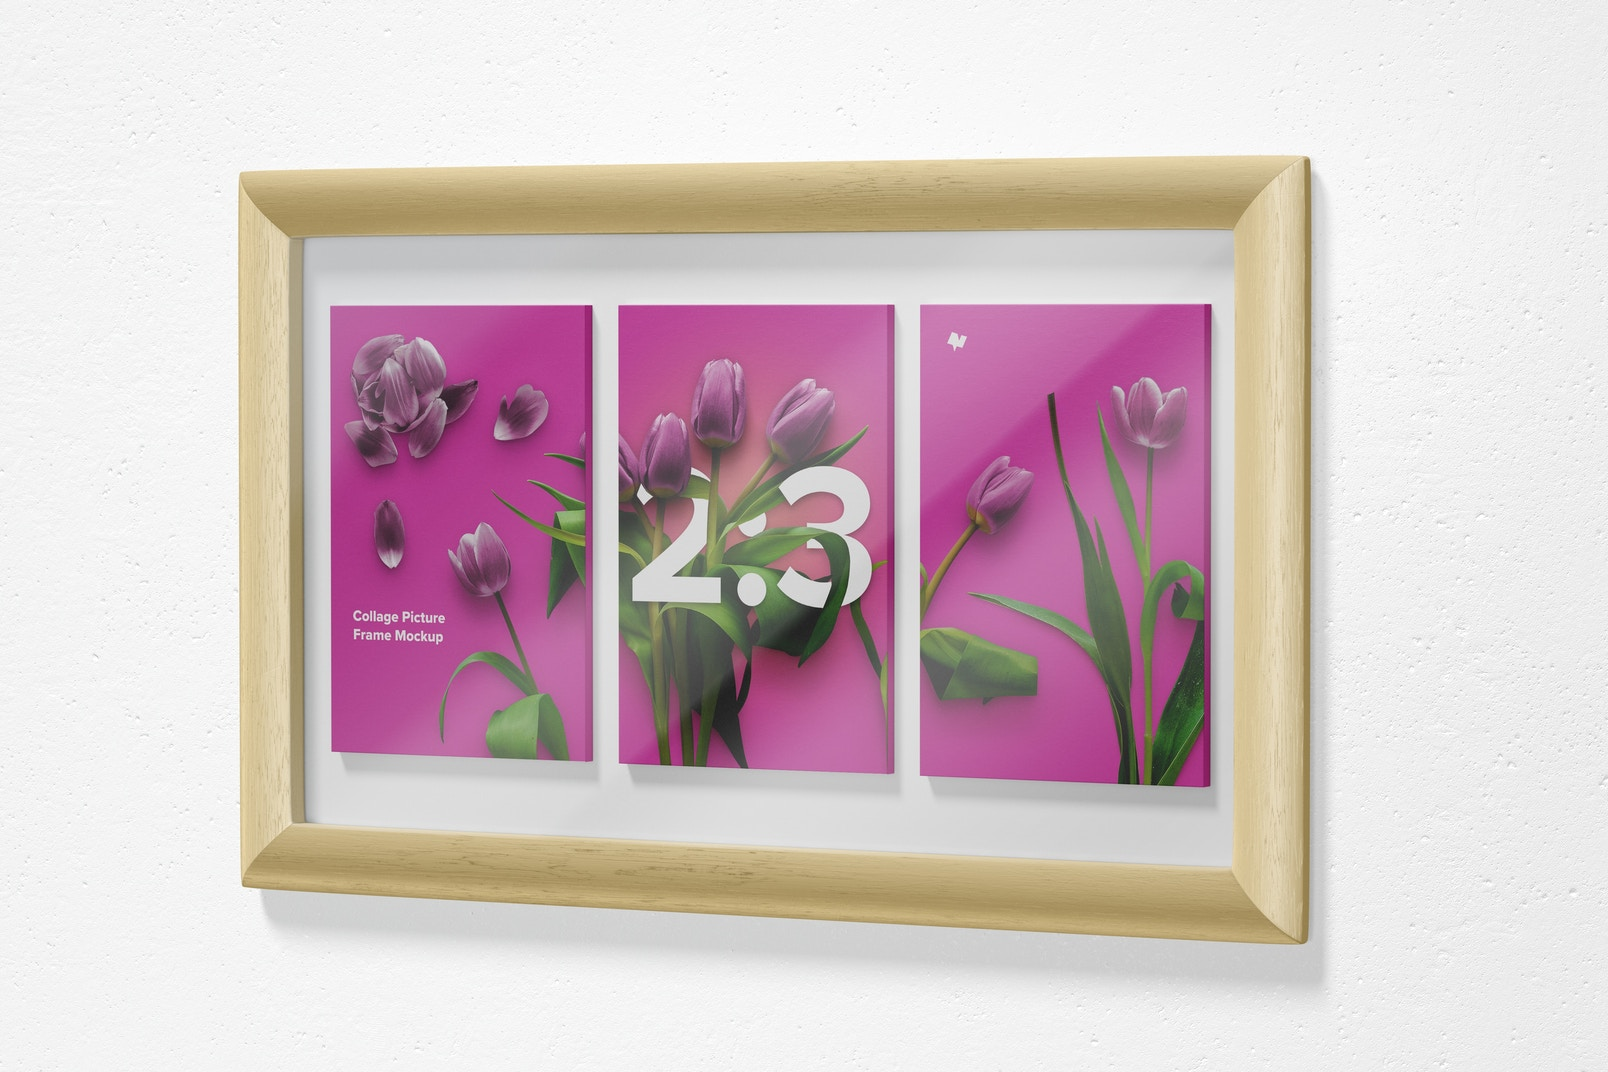 2:3 Collage Picture Frame Mockup, Right View